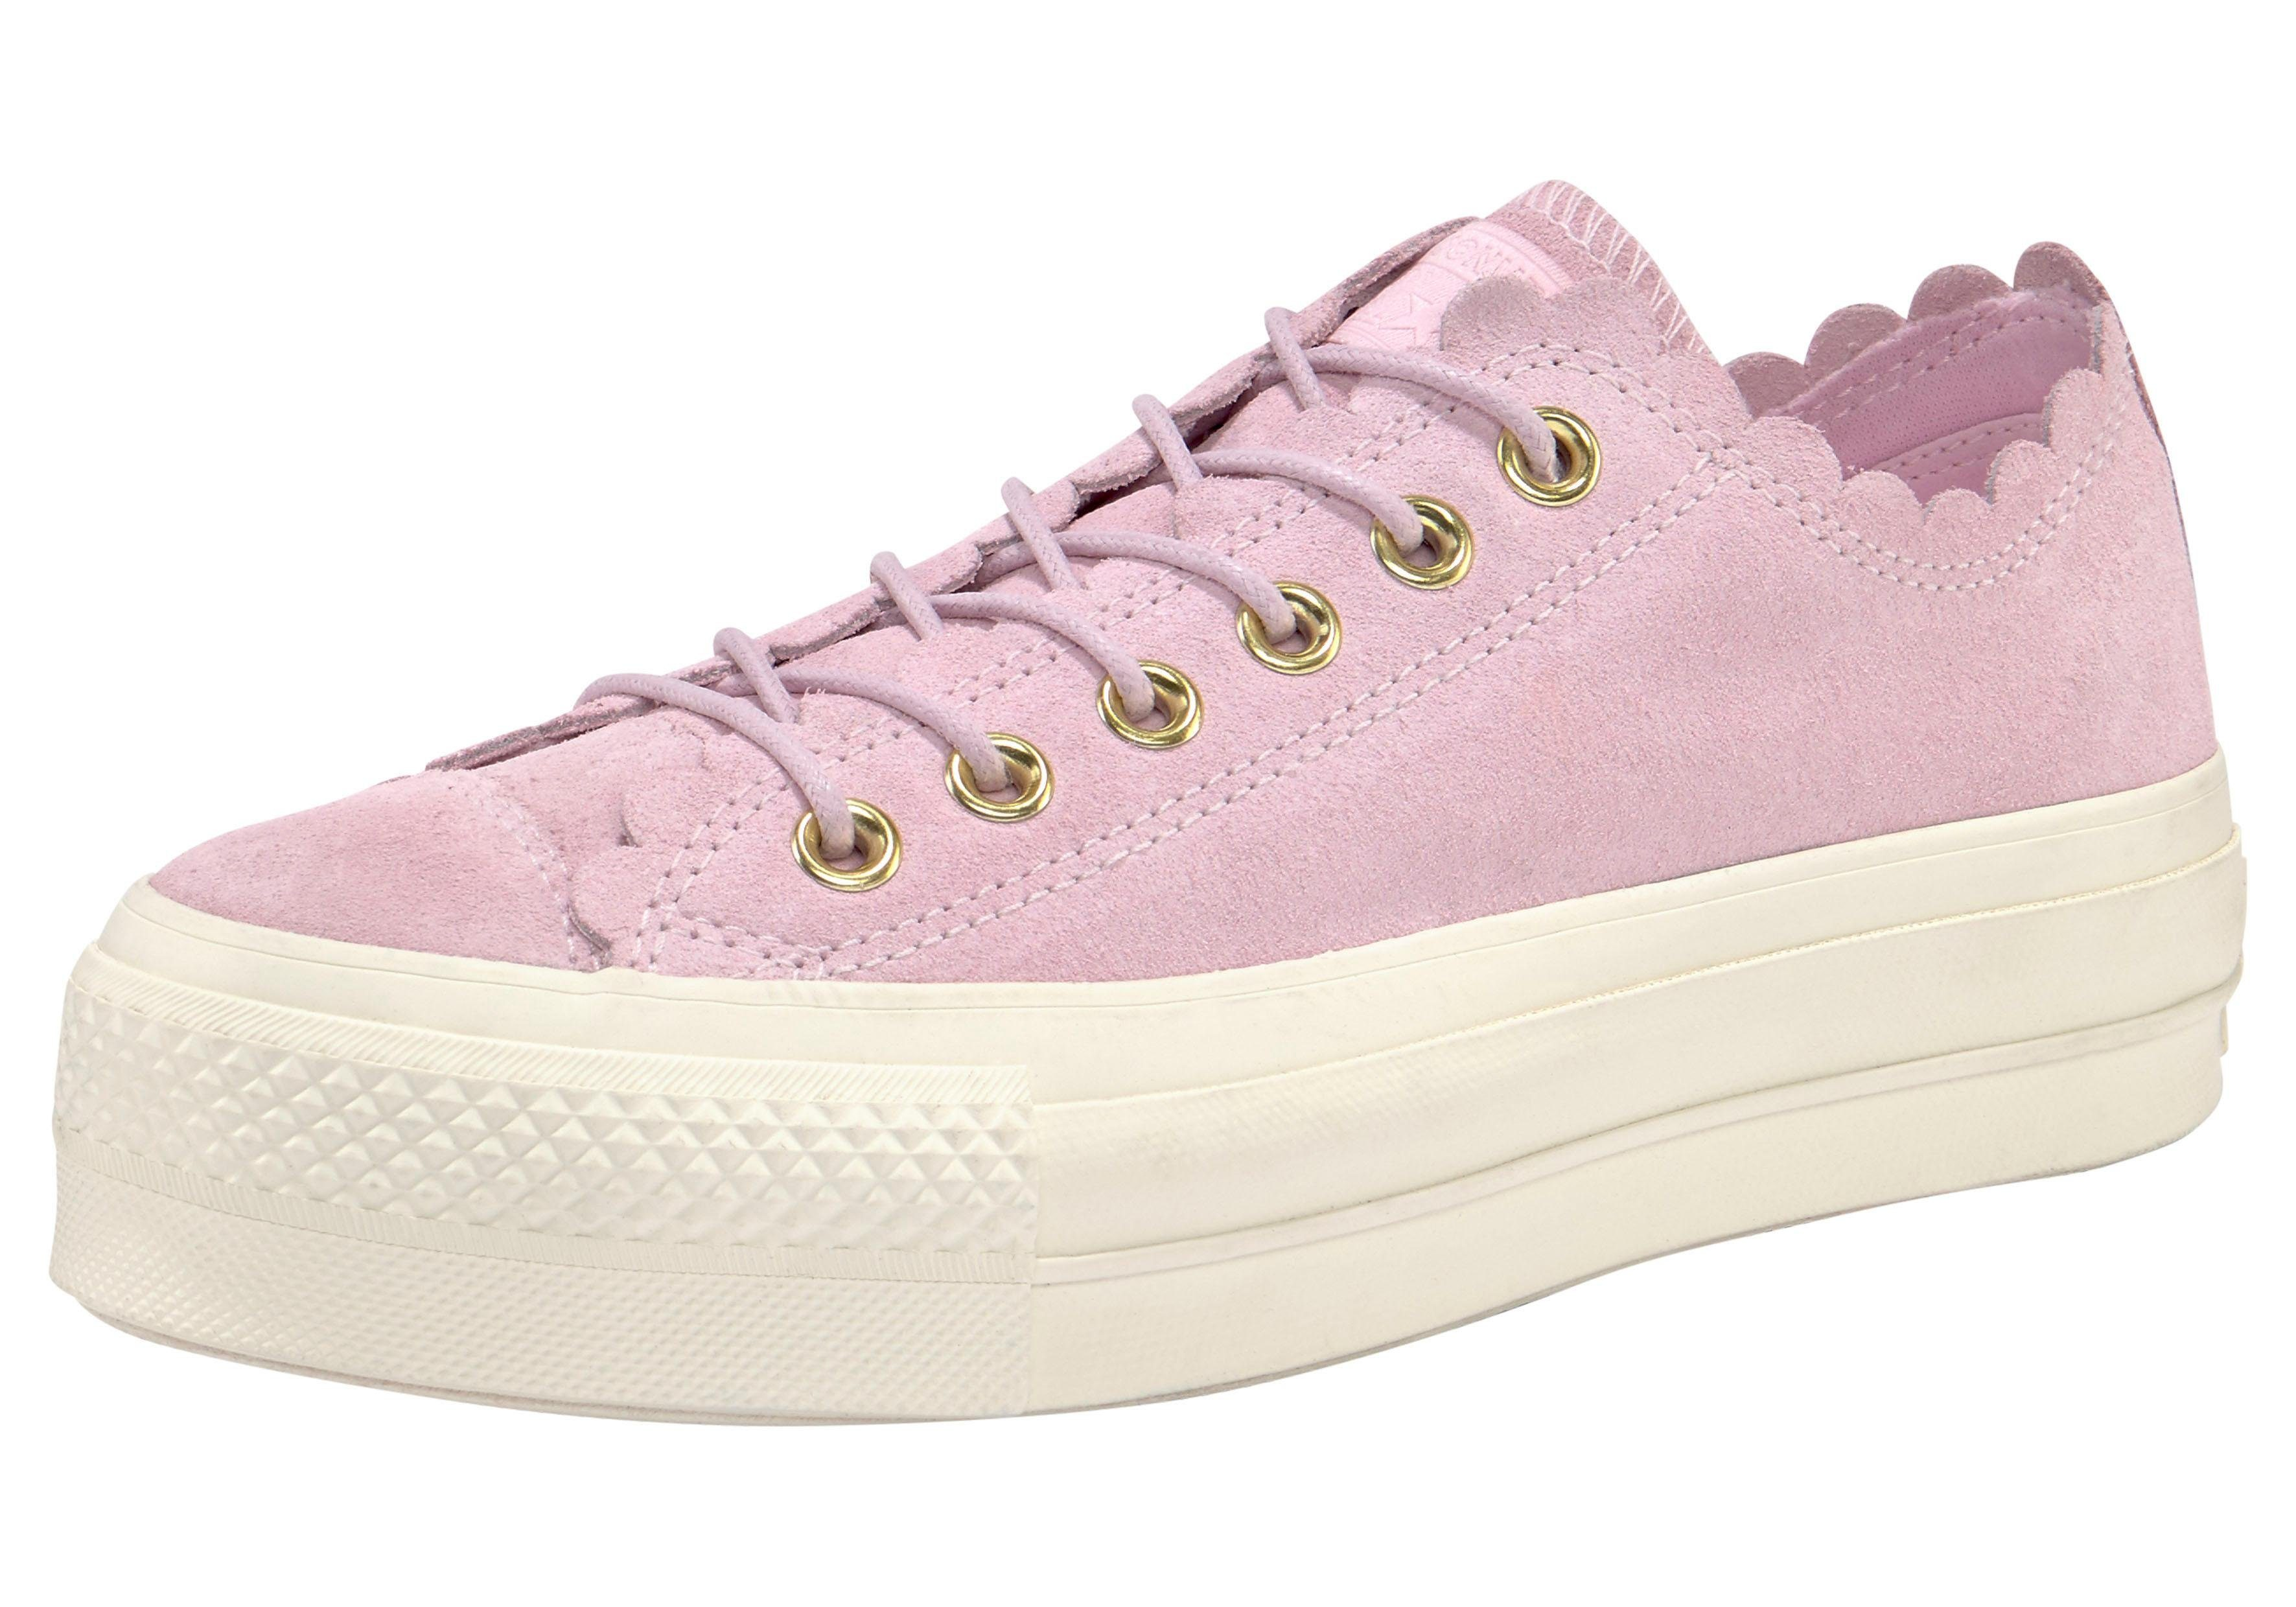 plateausneakers »Chuck Taylor All Star Lift Ox suèdeleer«